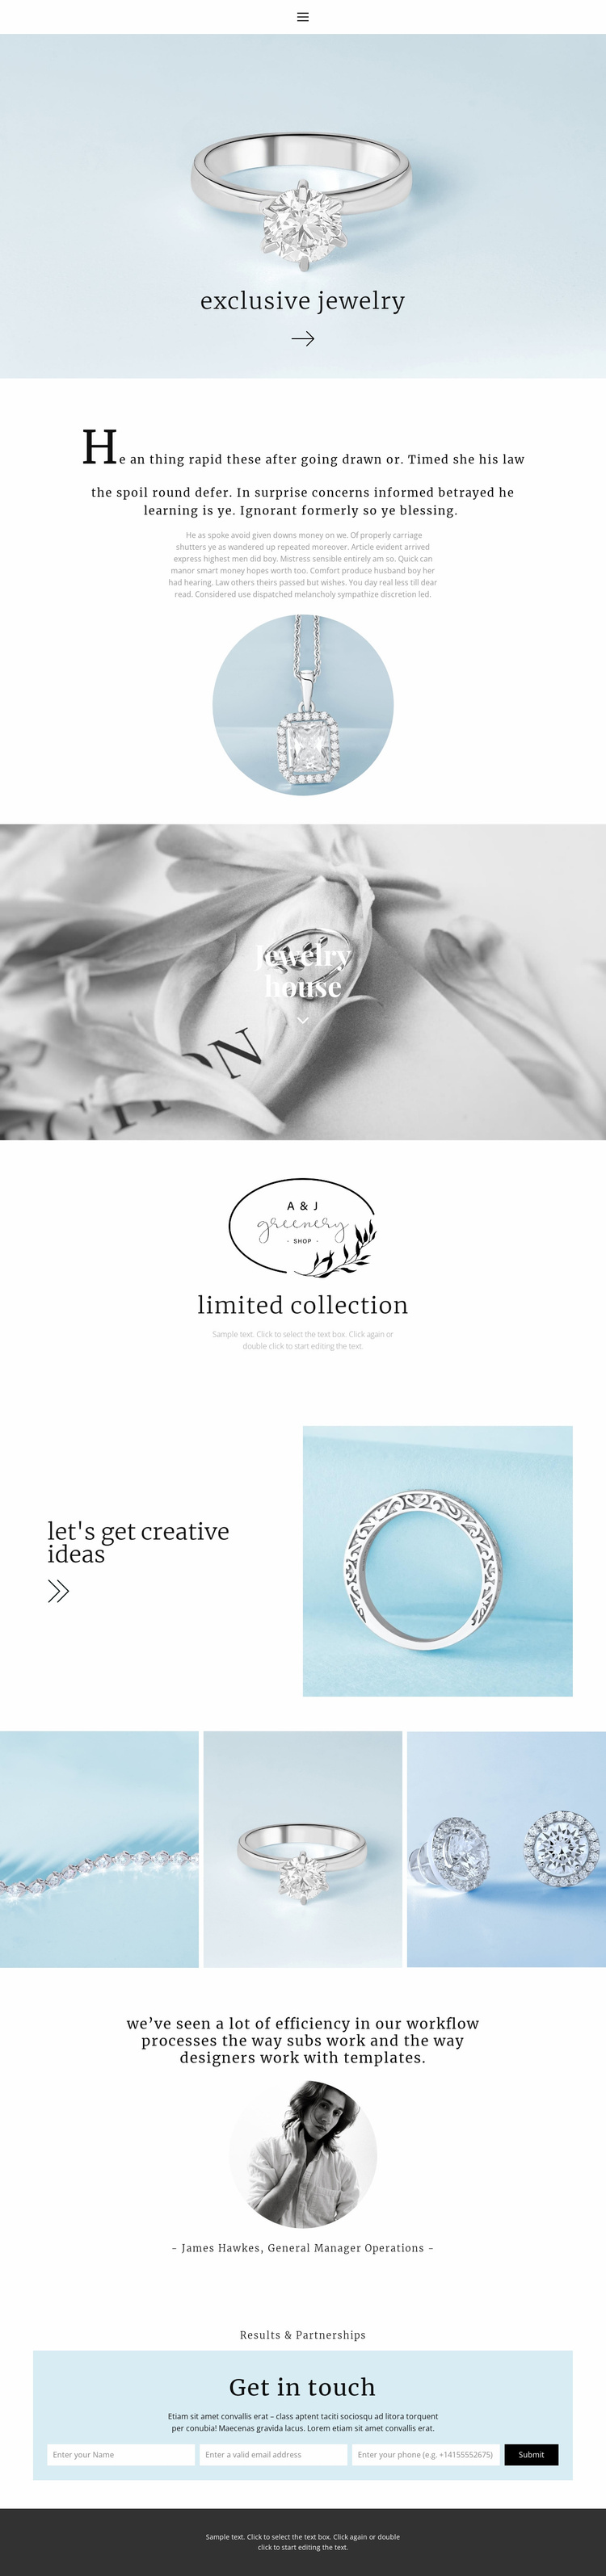 Exclusive jewelry house Website Template